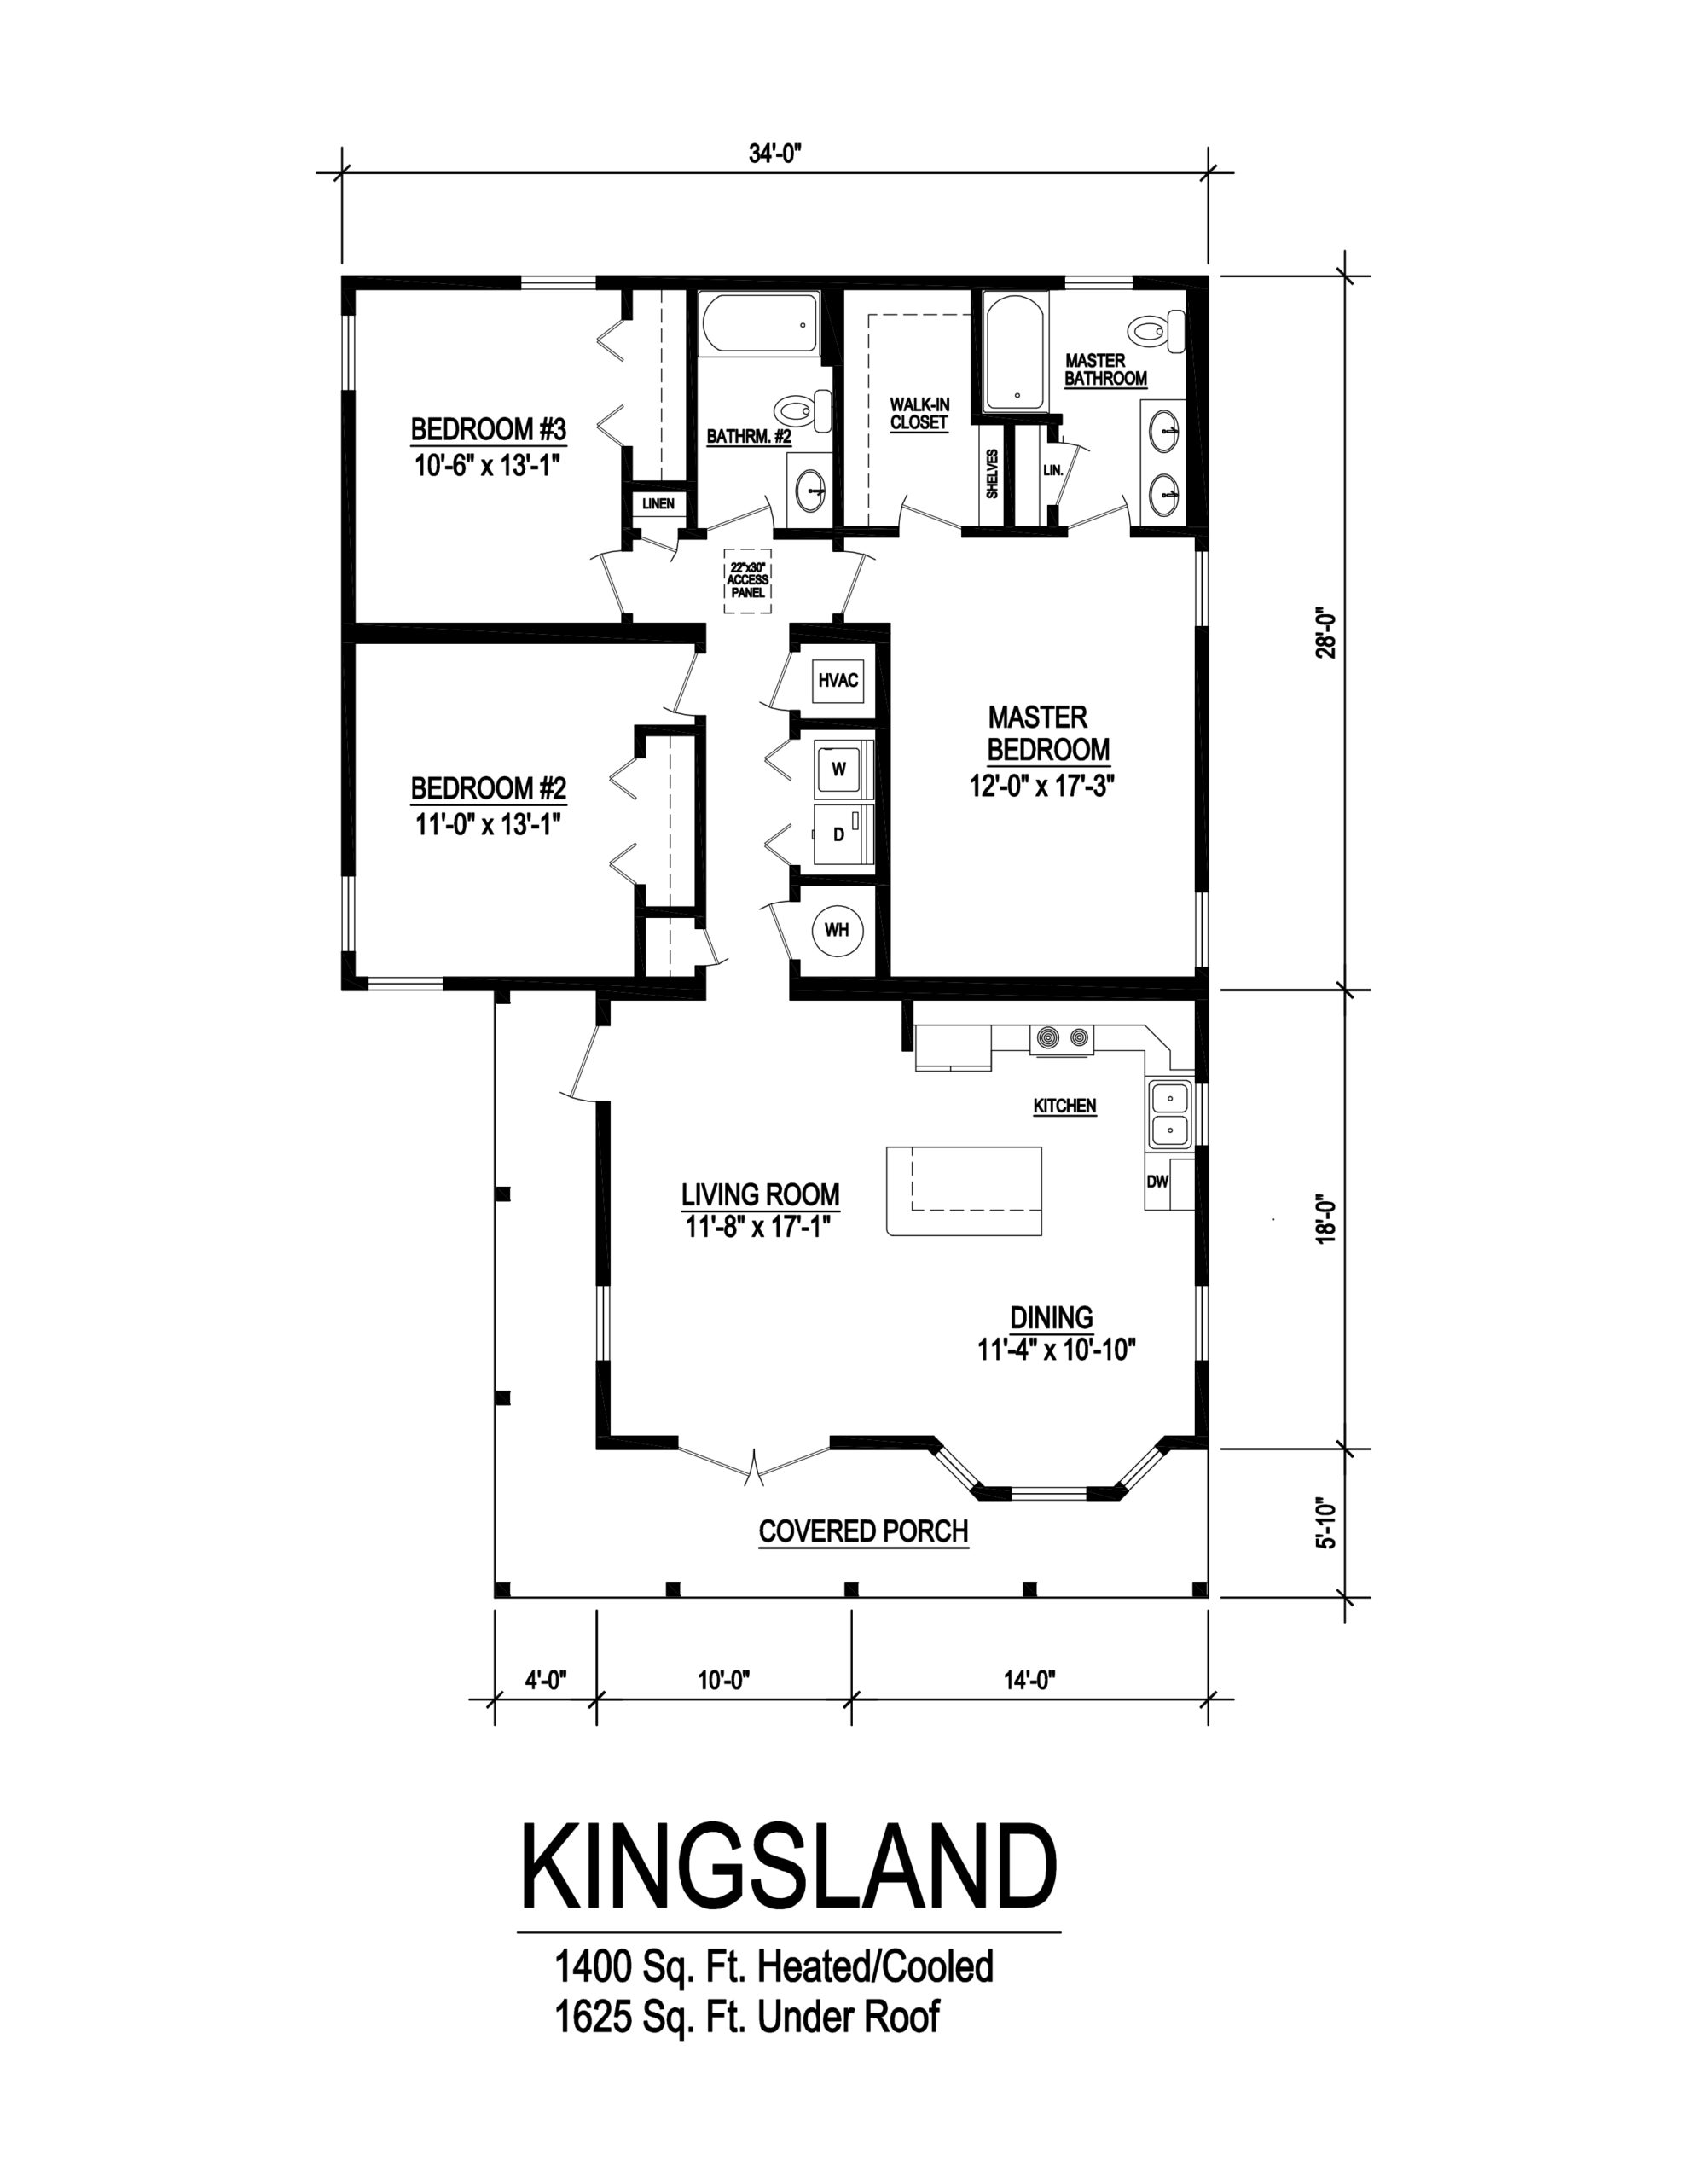 kingsland modular home floorplan